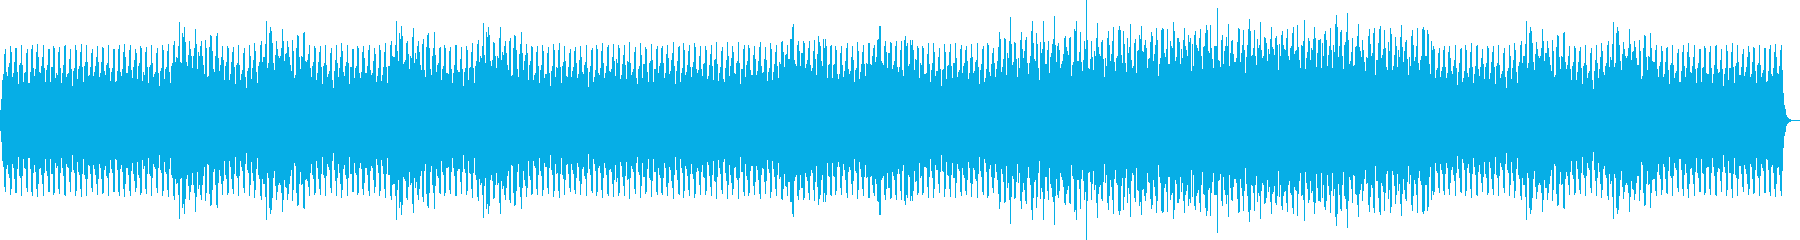 Surreal minor tone melody's reproduced waveform